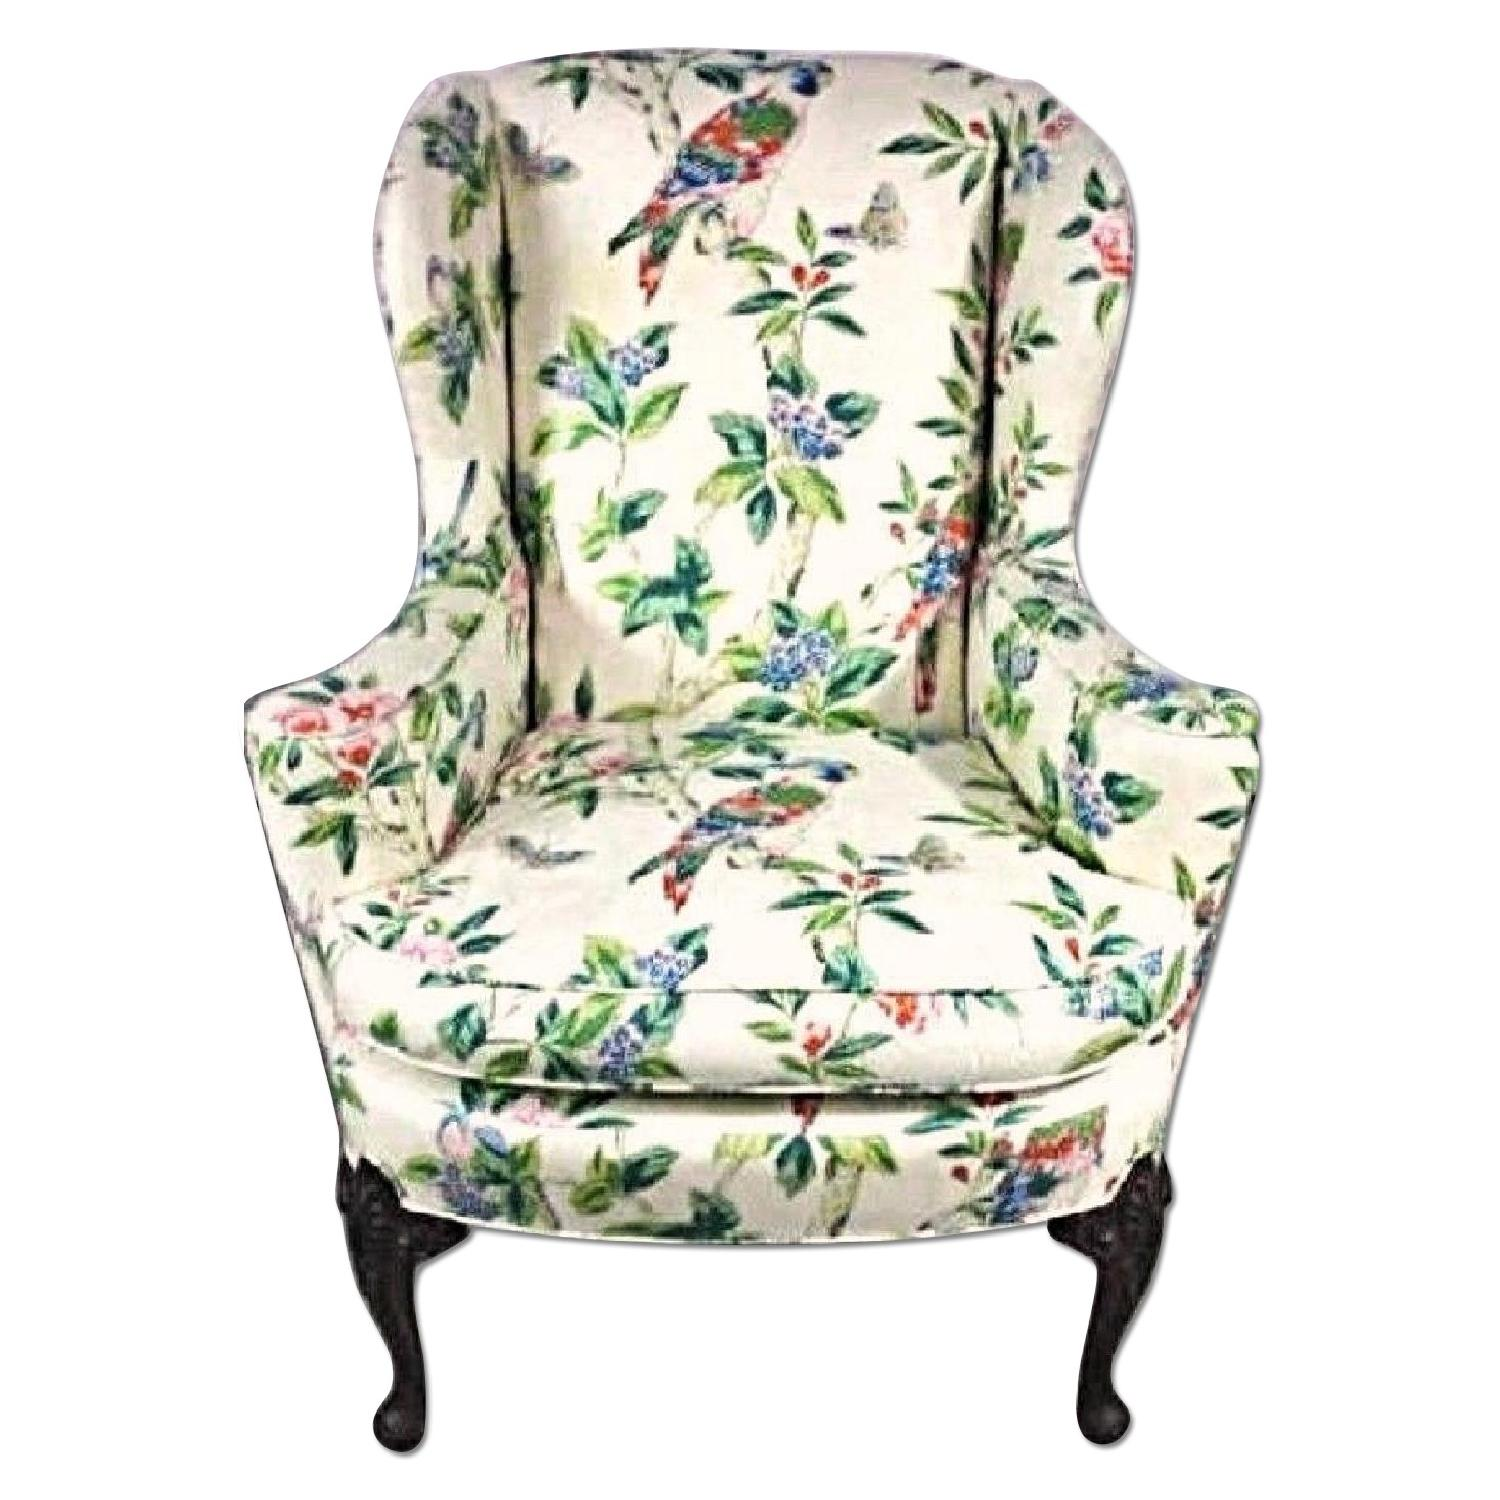 Parrot Exotic Upholstered Wingback Armchair & Ottoman